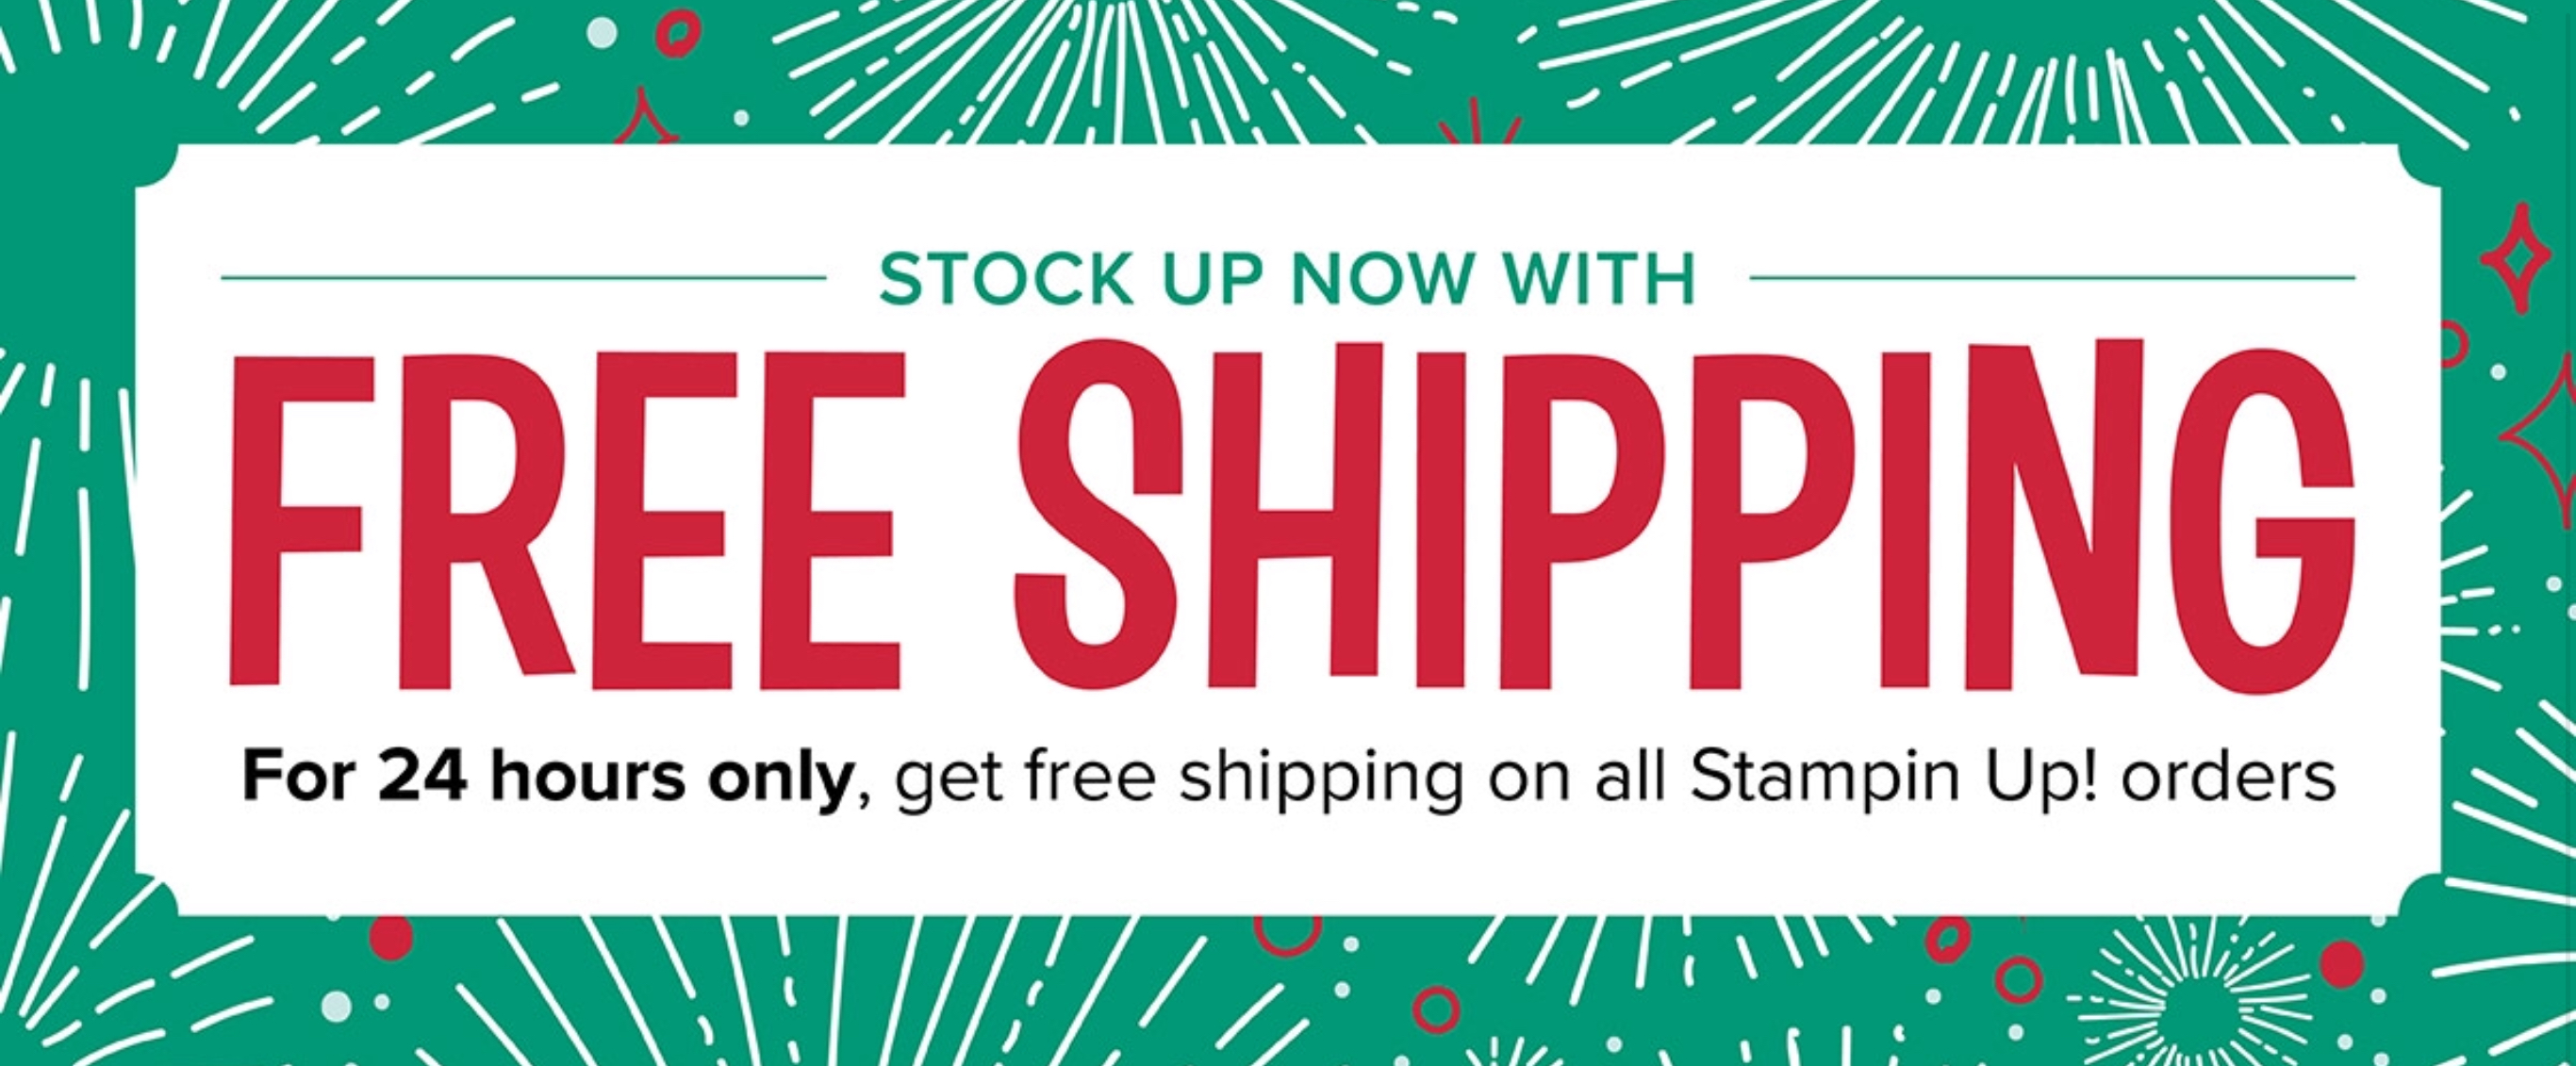 free-shipping-24-hours-only